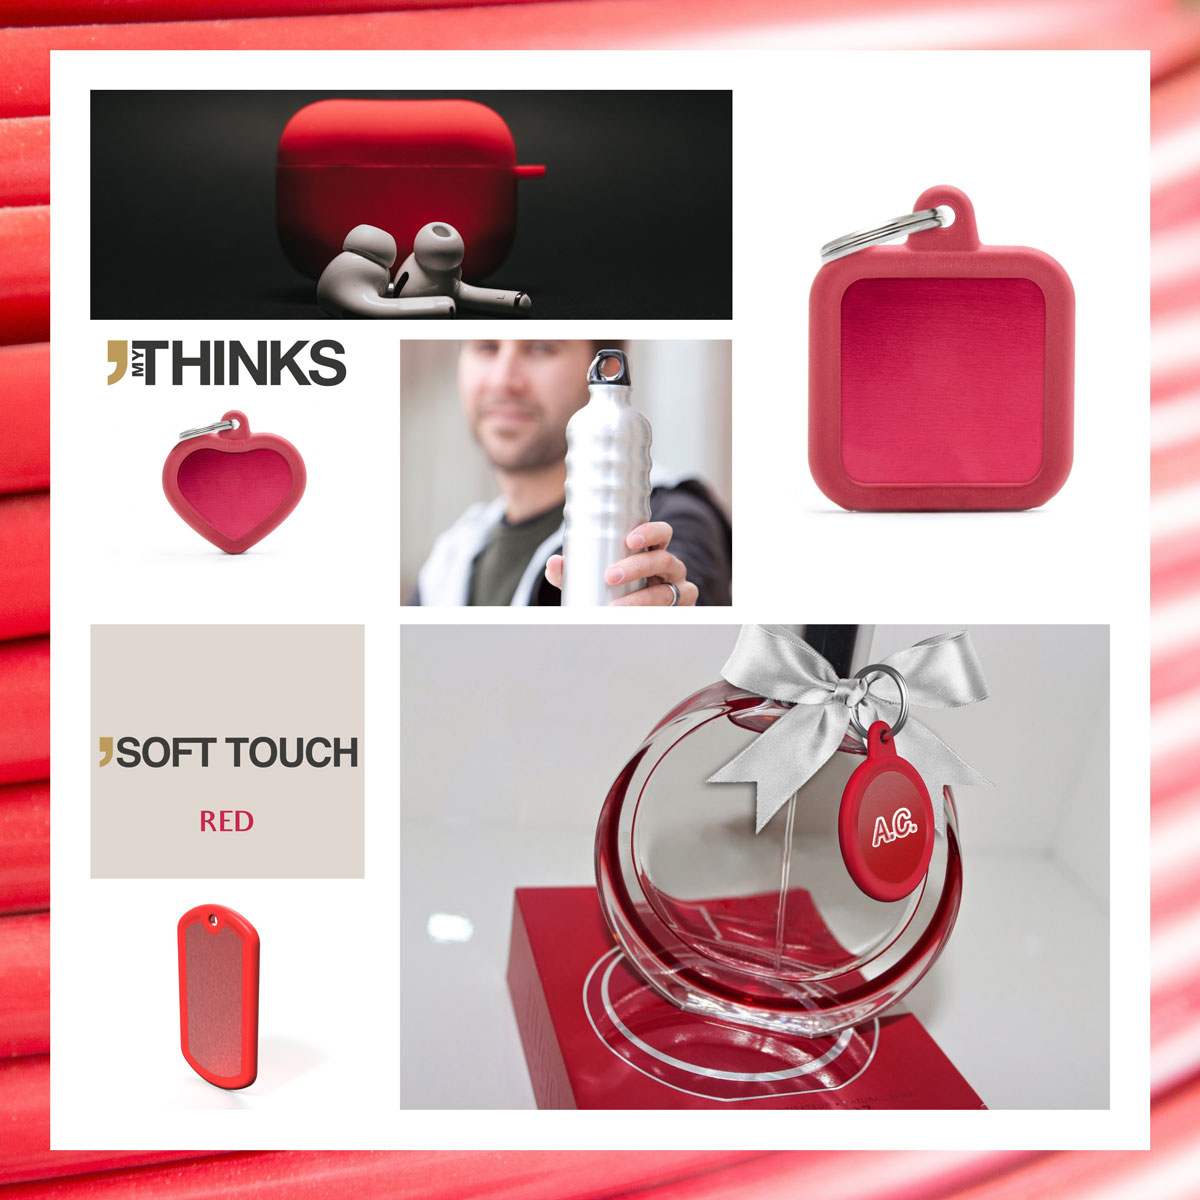 Mood board Soft touch collection gifts with red rubber braid on red anodized aluminum tags for the travel accesories and perfume and cosmetics market